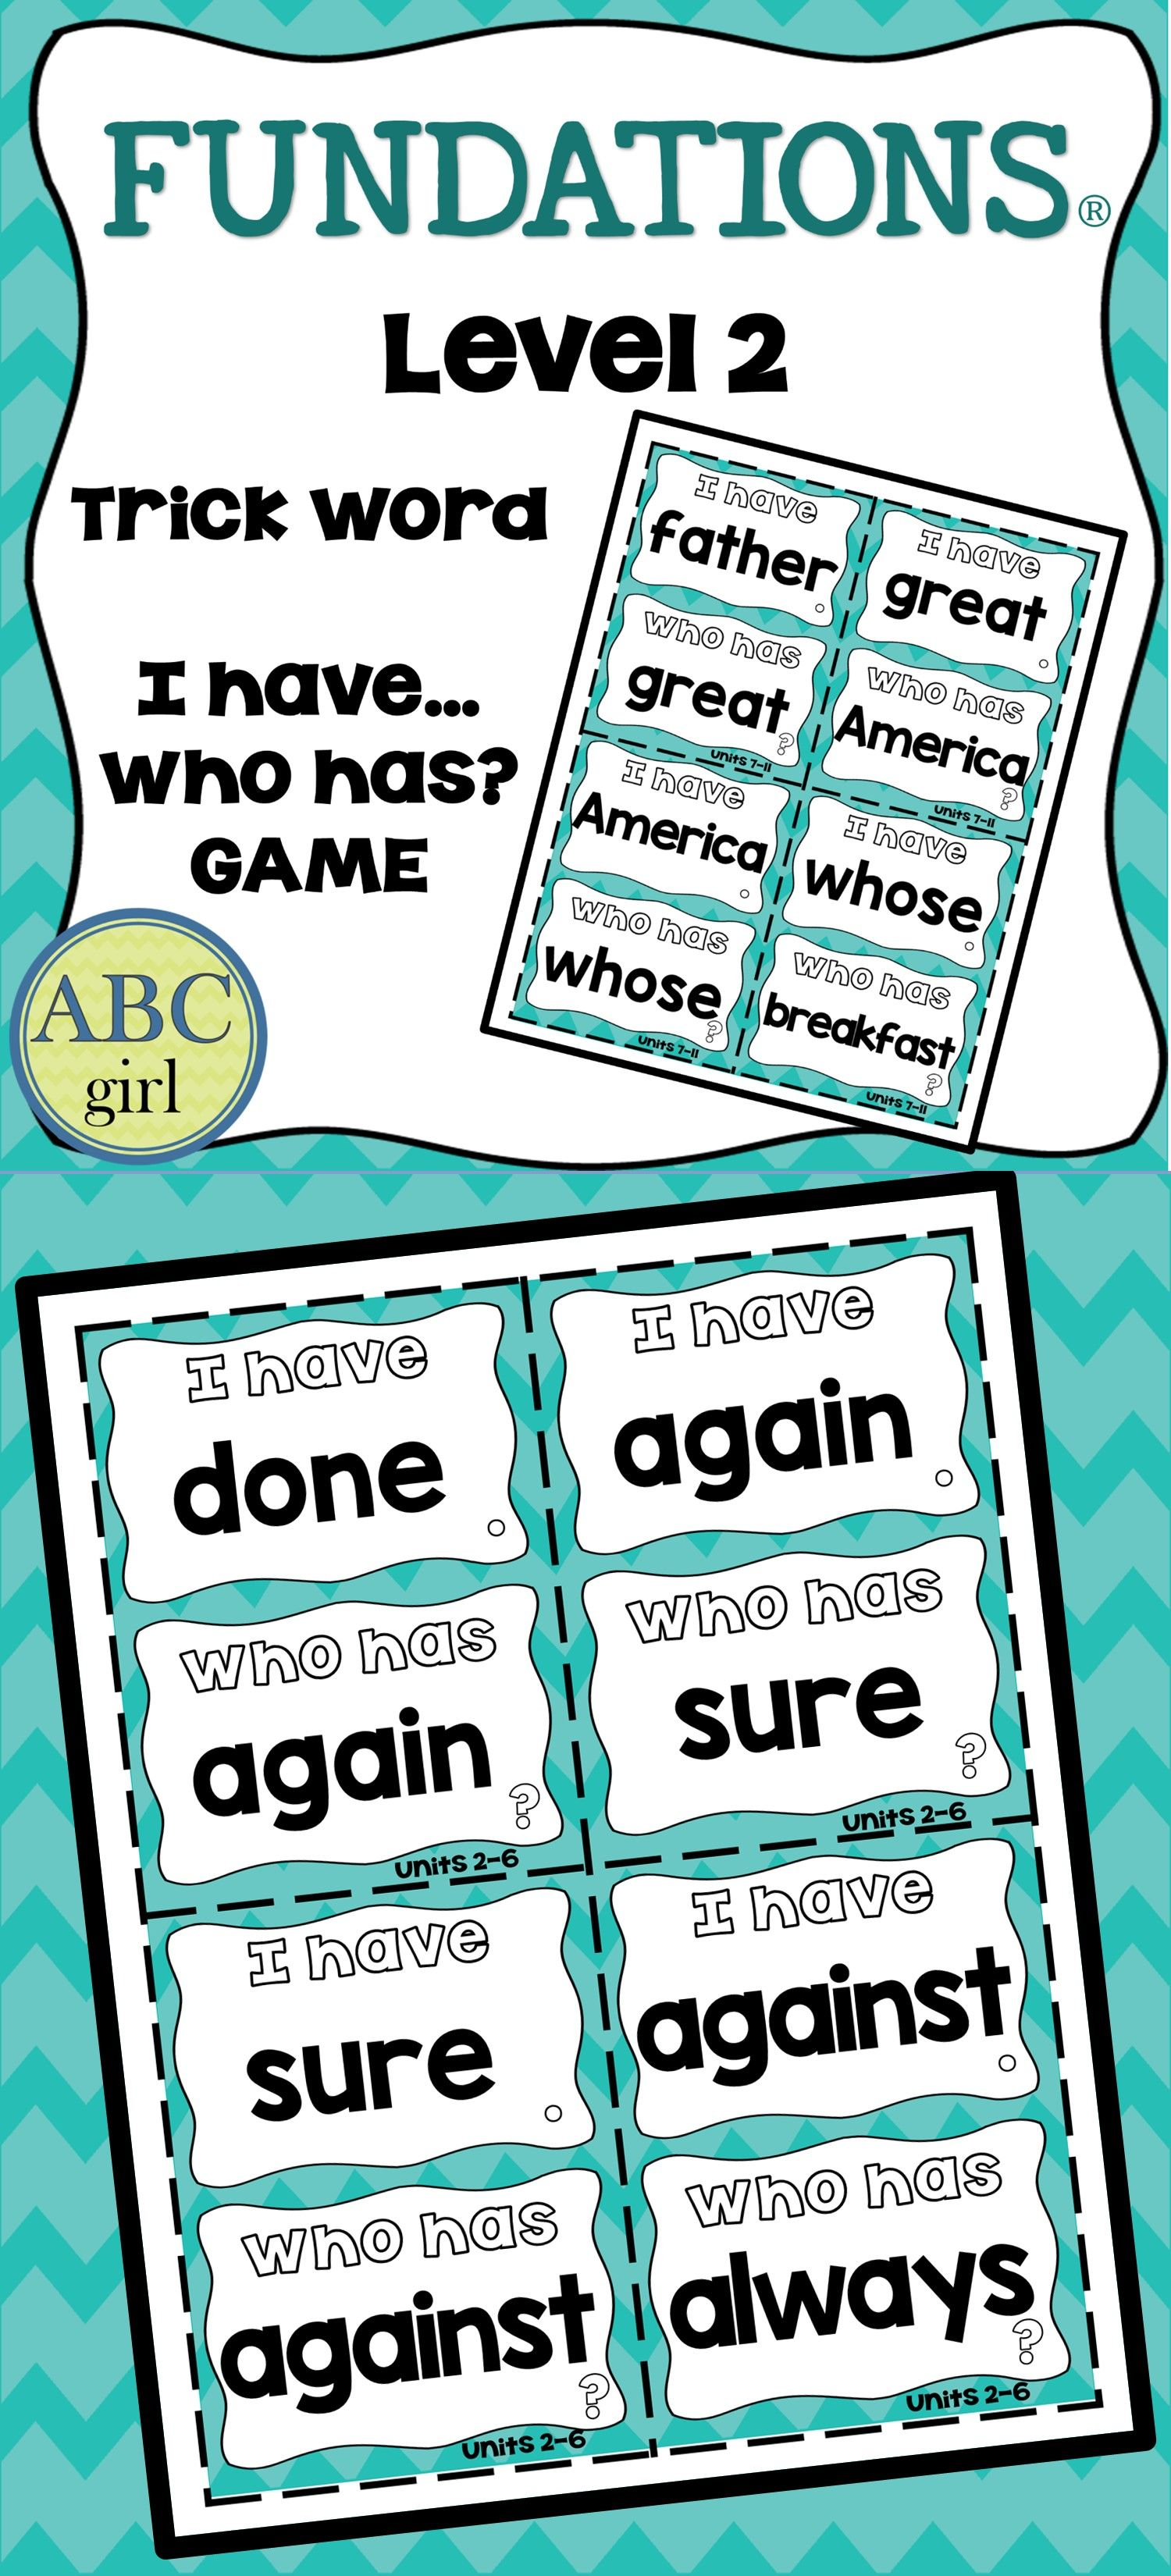 Fundations Level 2 Worksheets   Printable Worksheets and Activities for  Teachers [ 3300 x 1500 Pixel ]